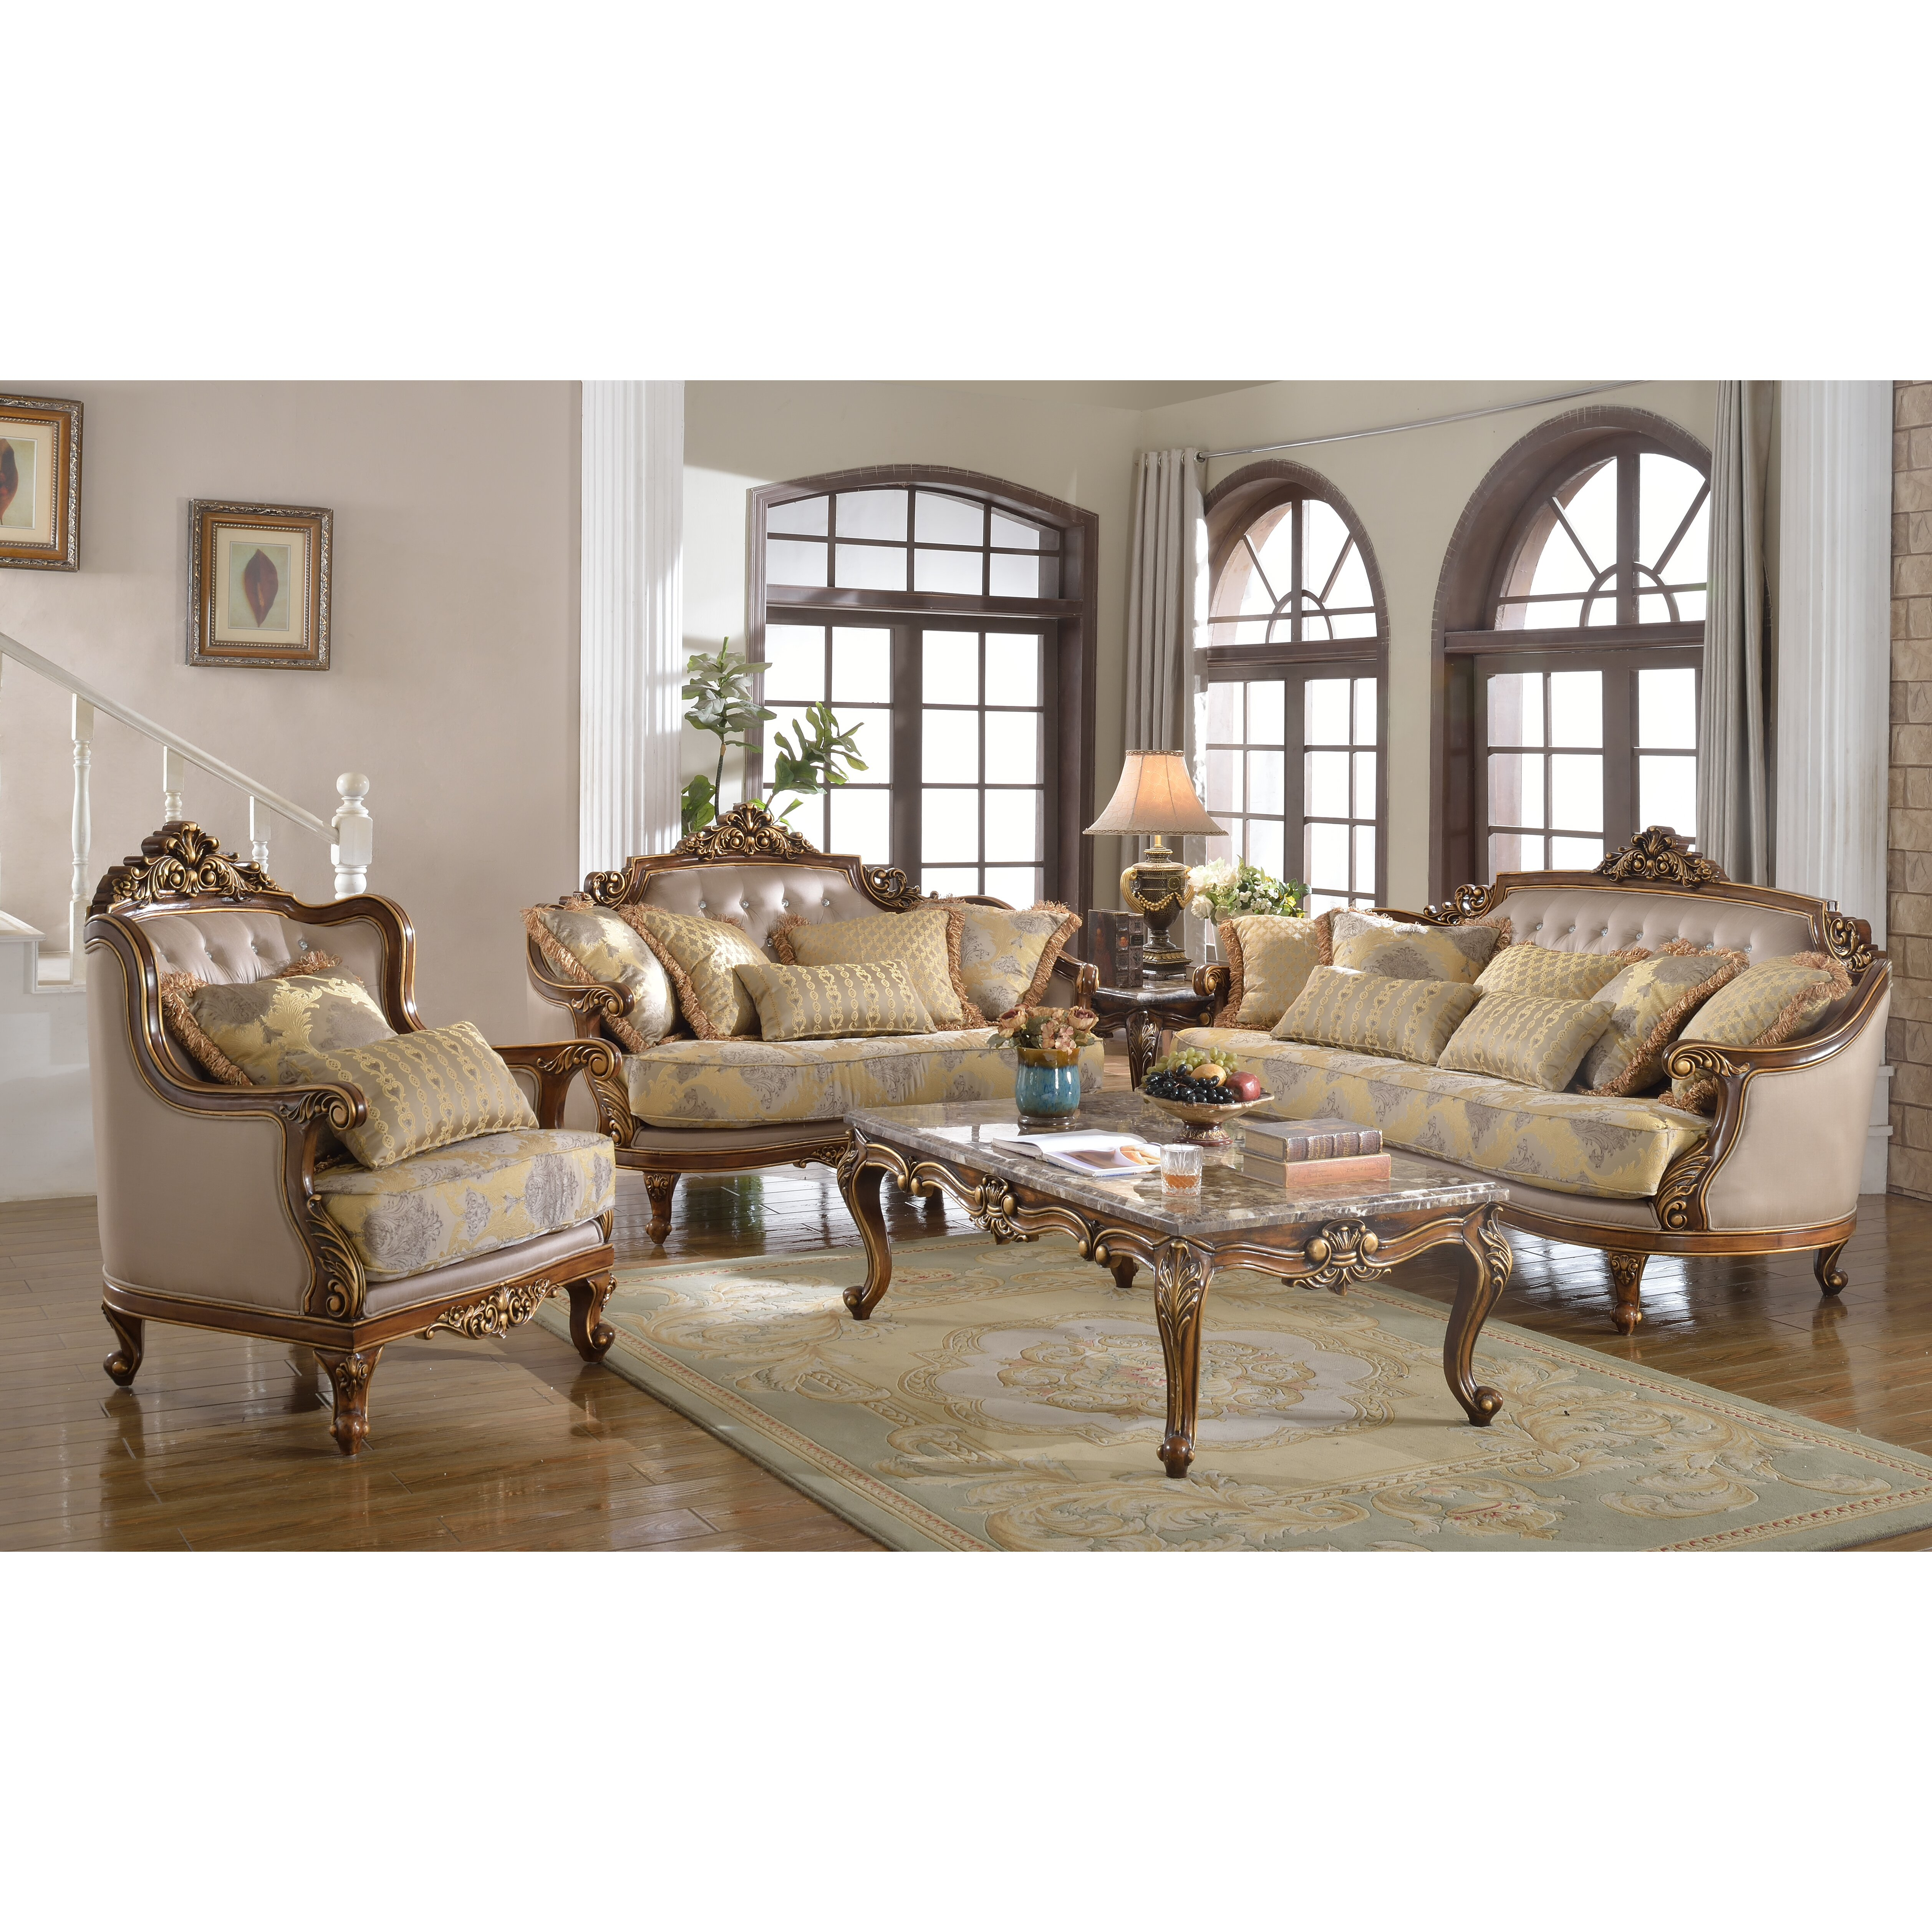 Traditional 3 piece living room set wayfair for 3 piece living room set